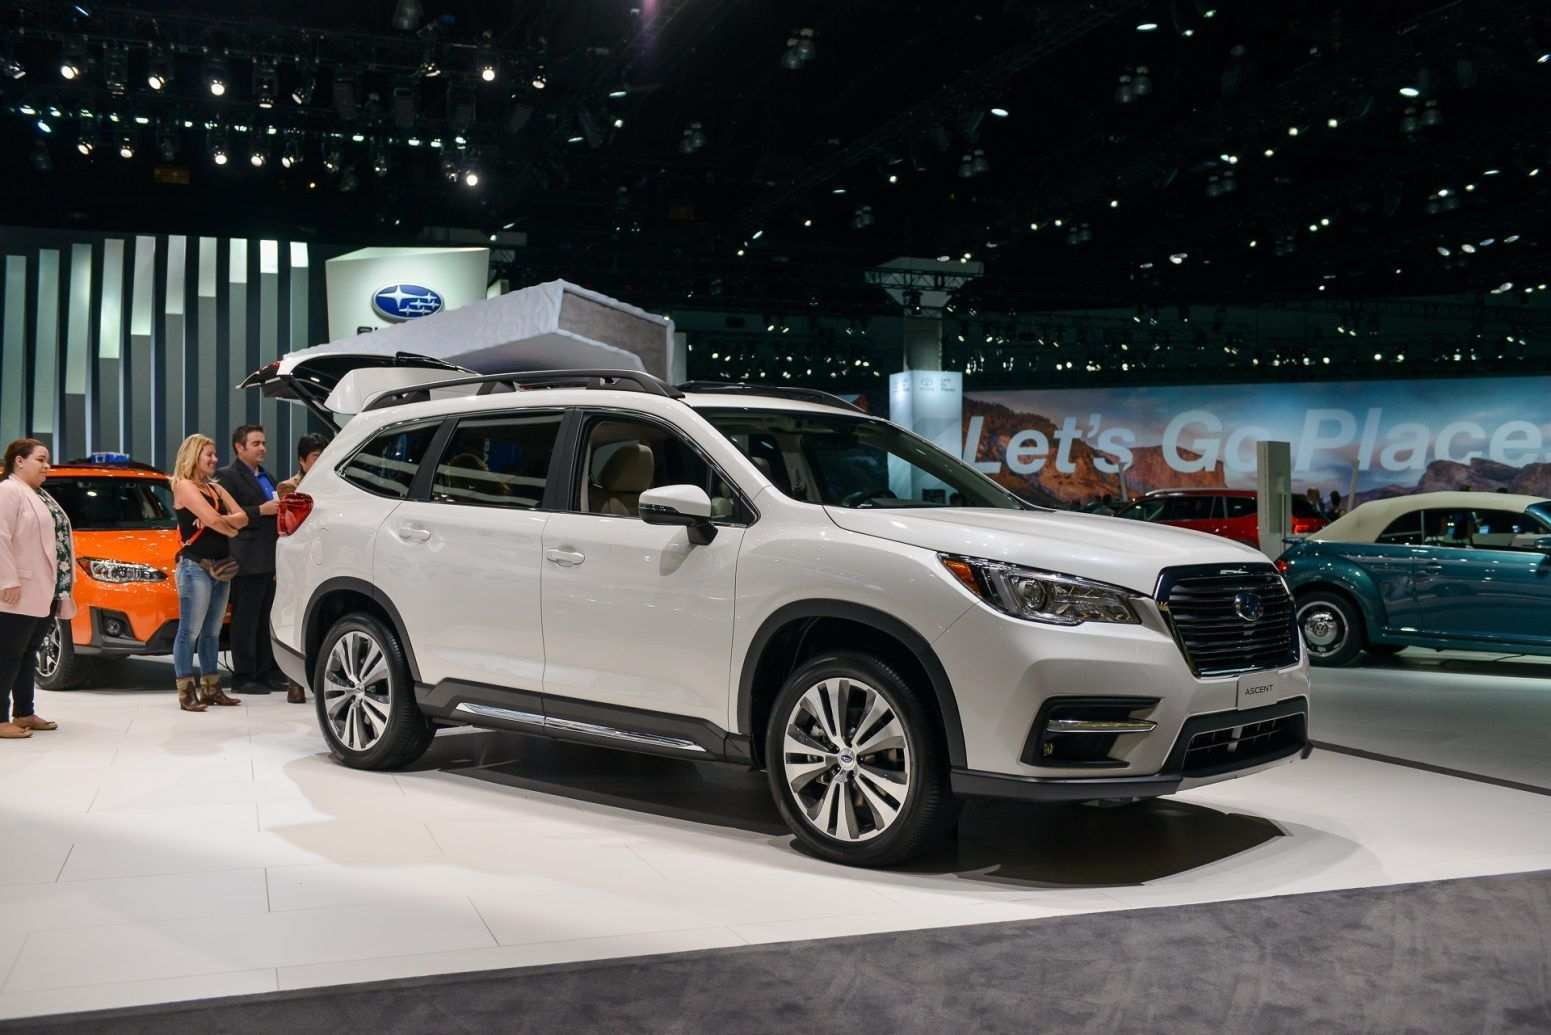 55 New Tribeca Subaru 2019 Price And Review